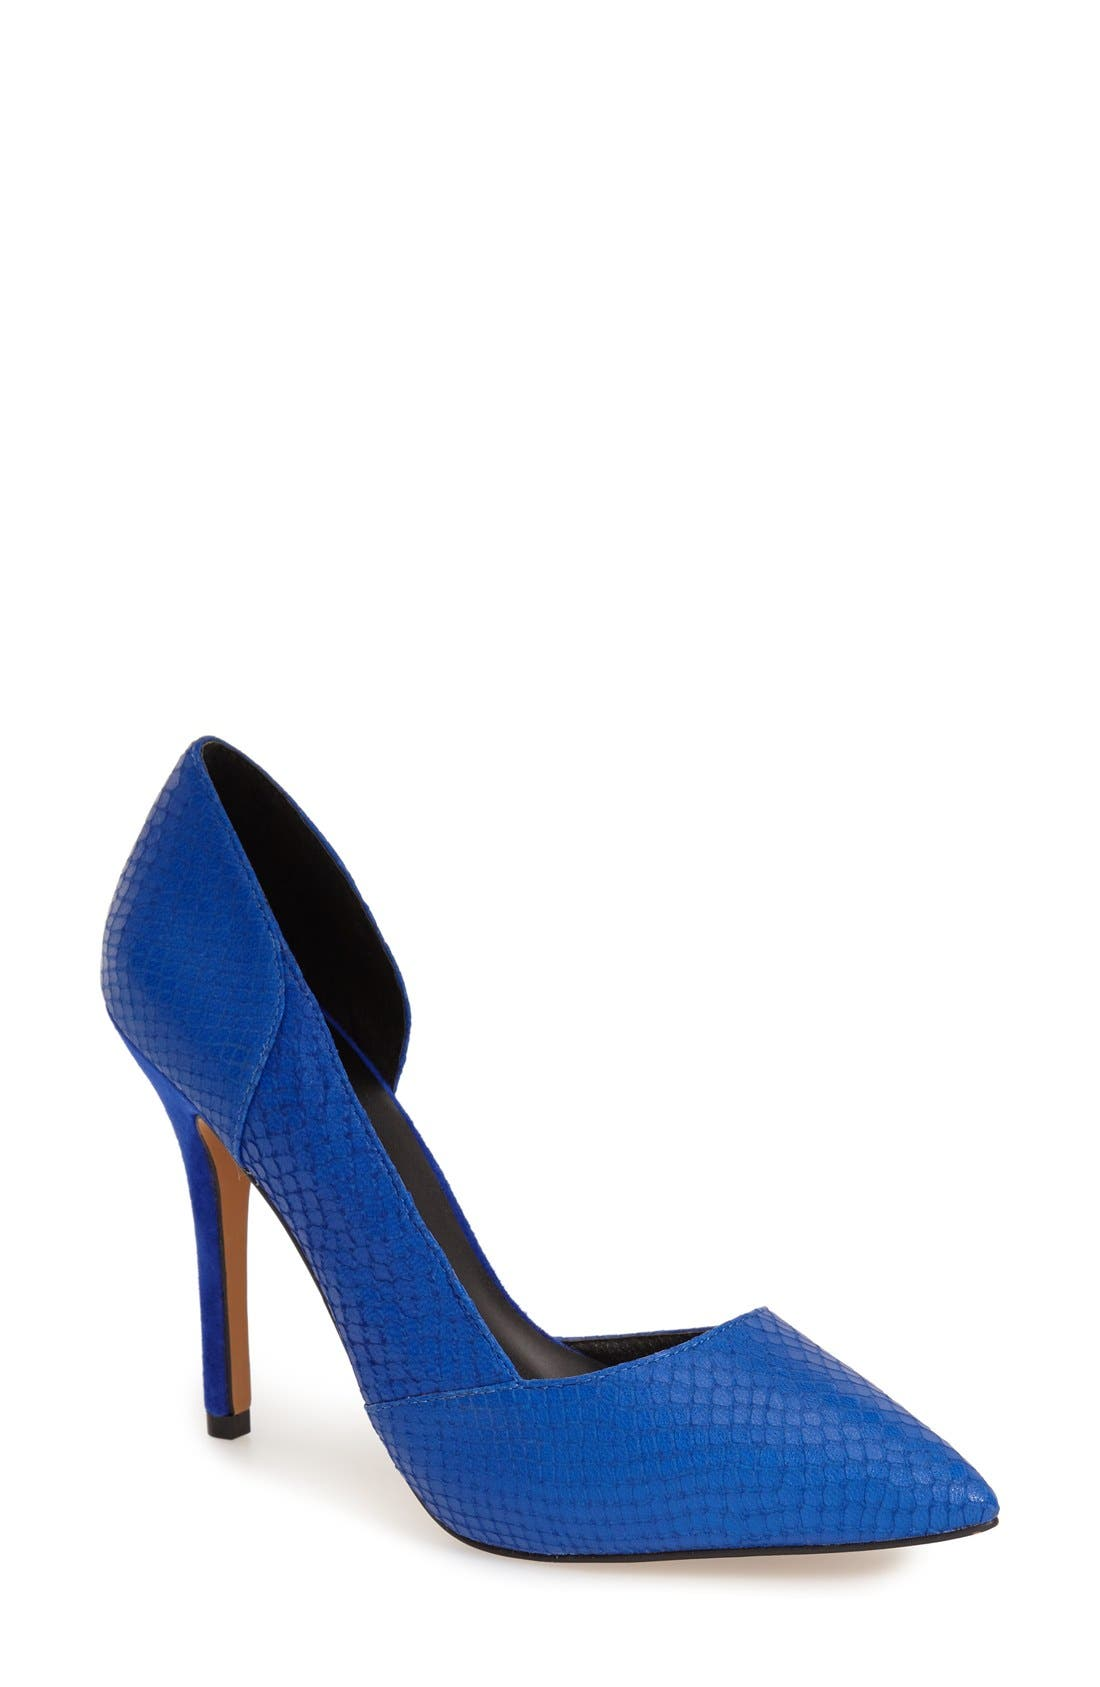 Main Image - Nicole Miller 'Camilla' Pointy Toe Pump (Women)